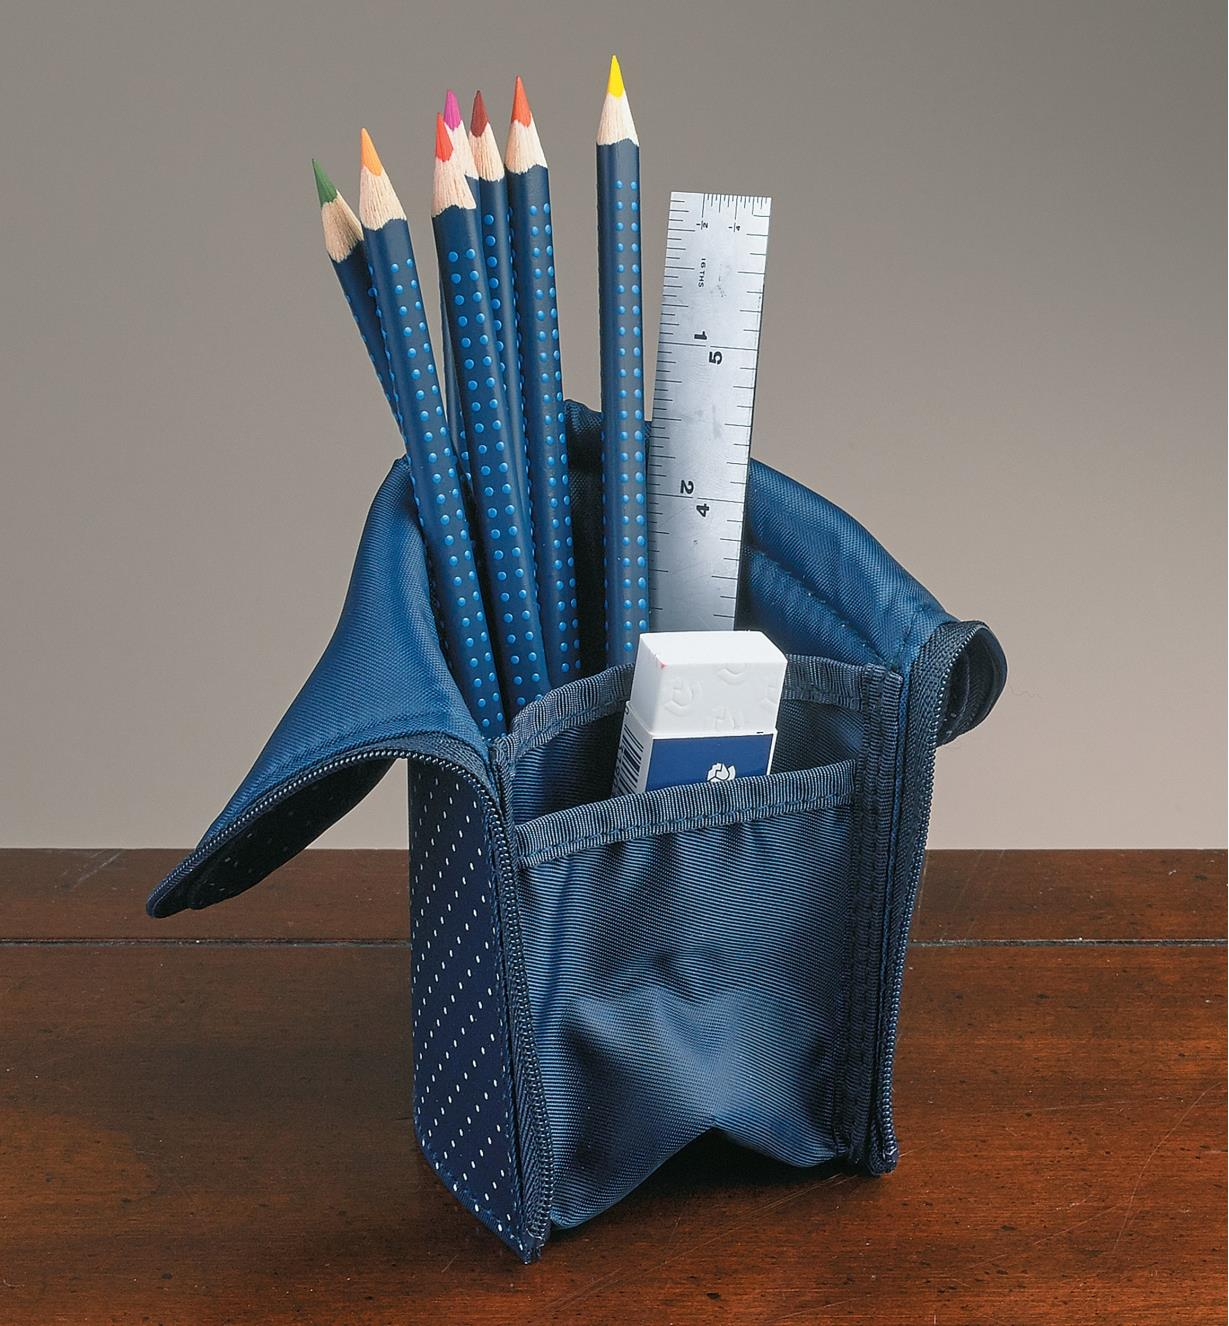 Stand-Up Pencil Case holding colored pencils, a ruler and an eraser